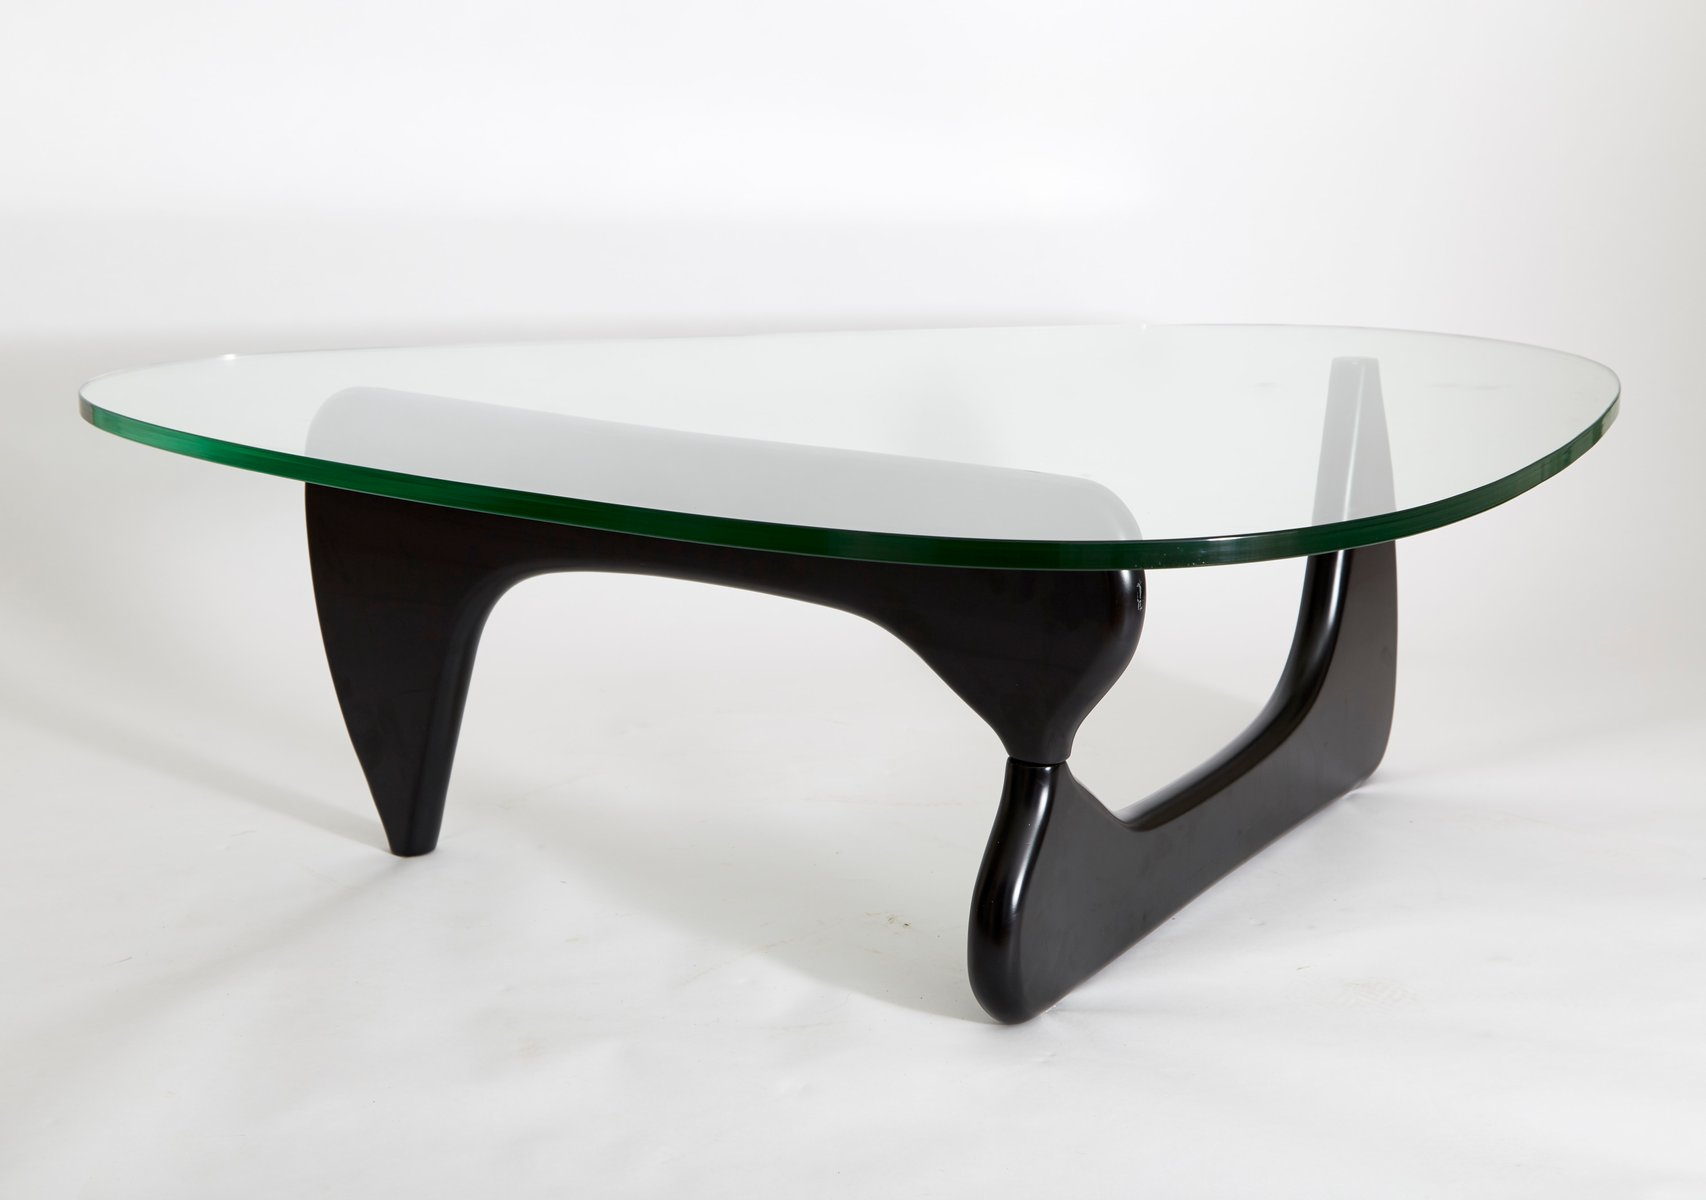 American IN 50 Coffee Table by Isamu Noguchi for Herman Miller